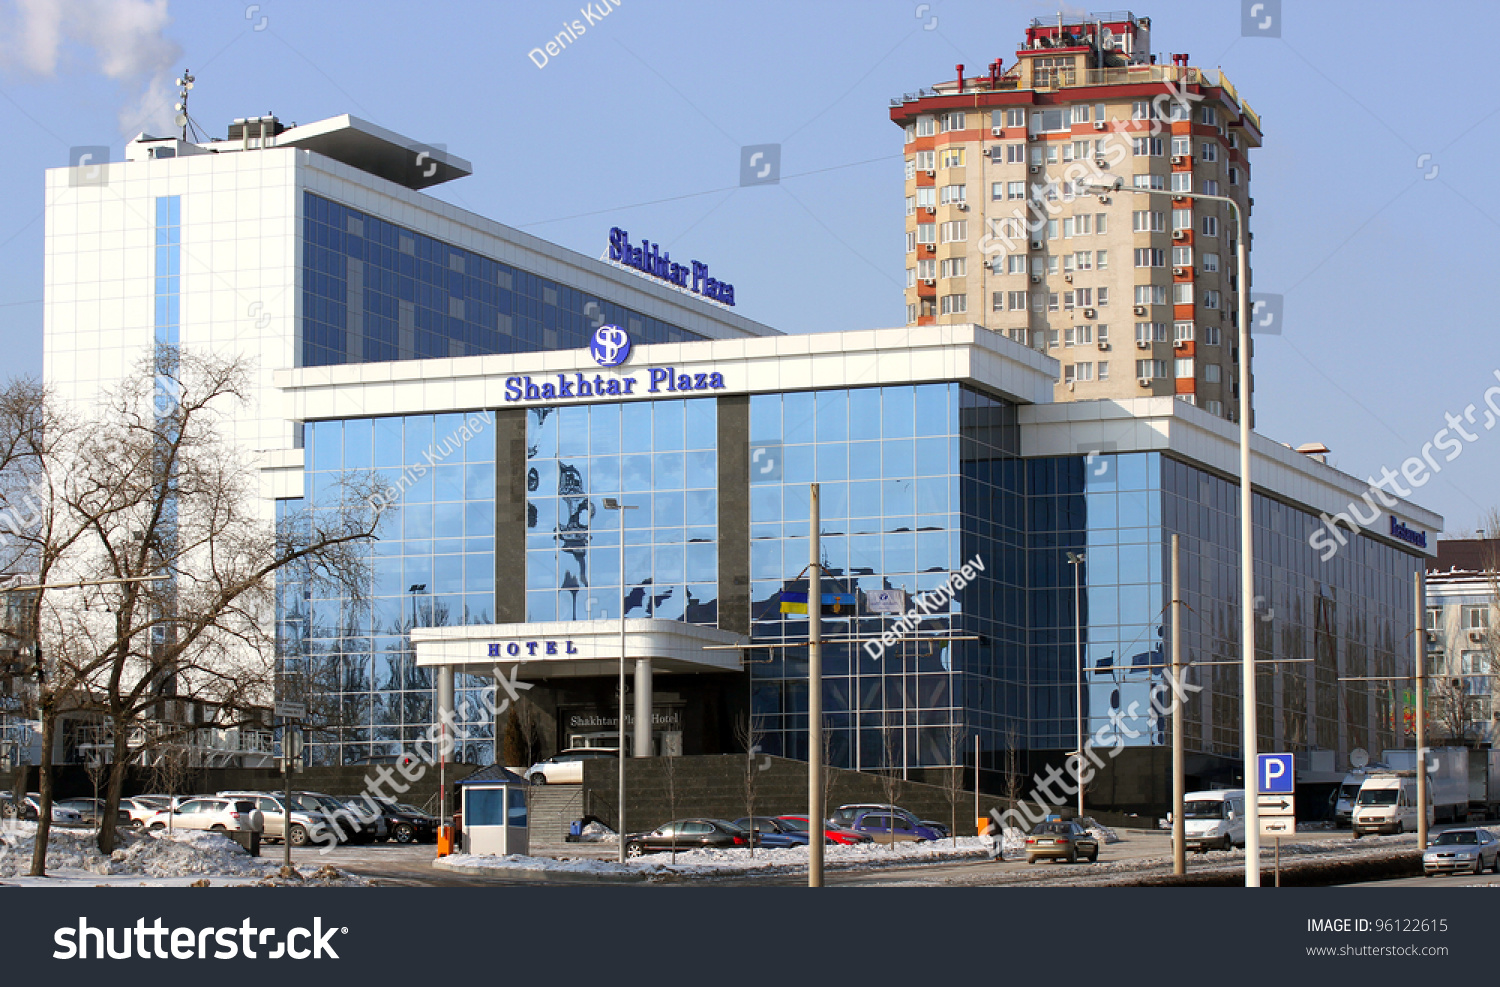 Hotels in Donetsk and the region: a selection of sites